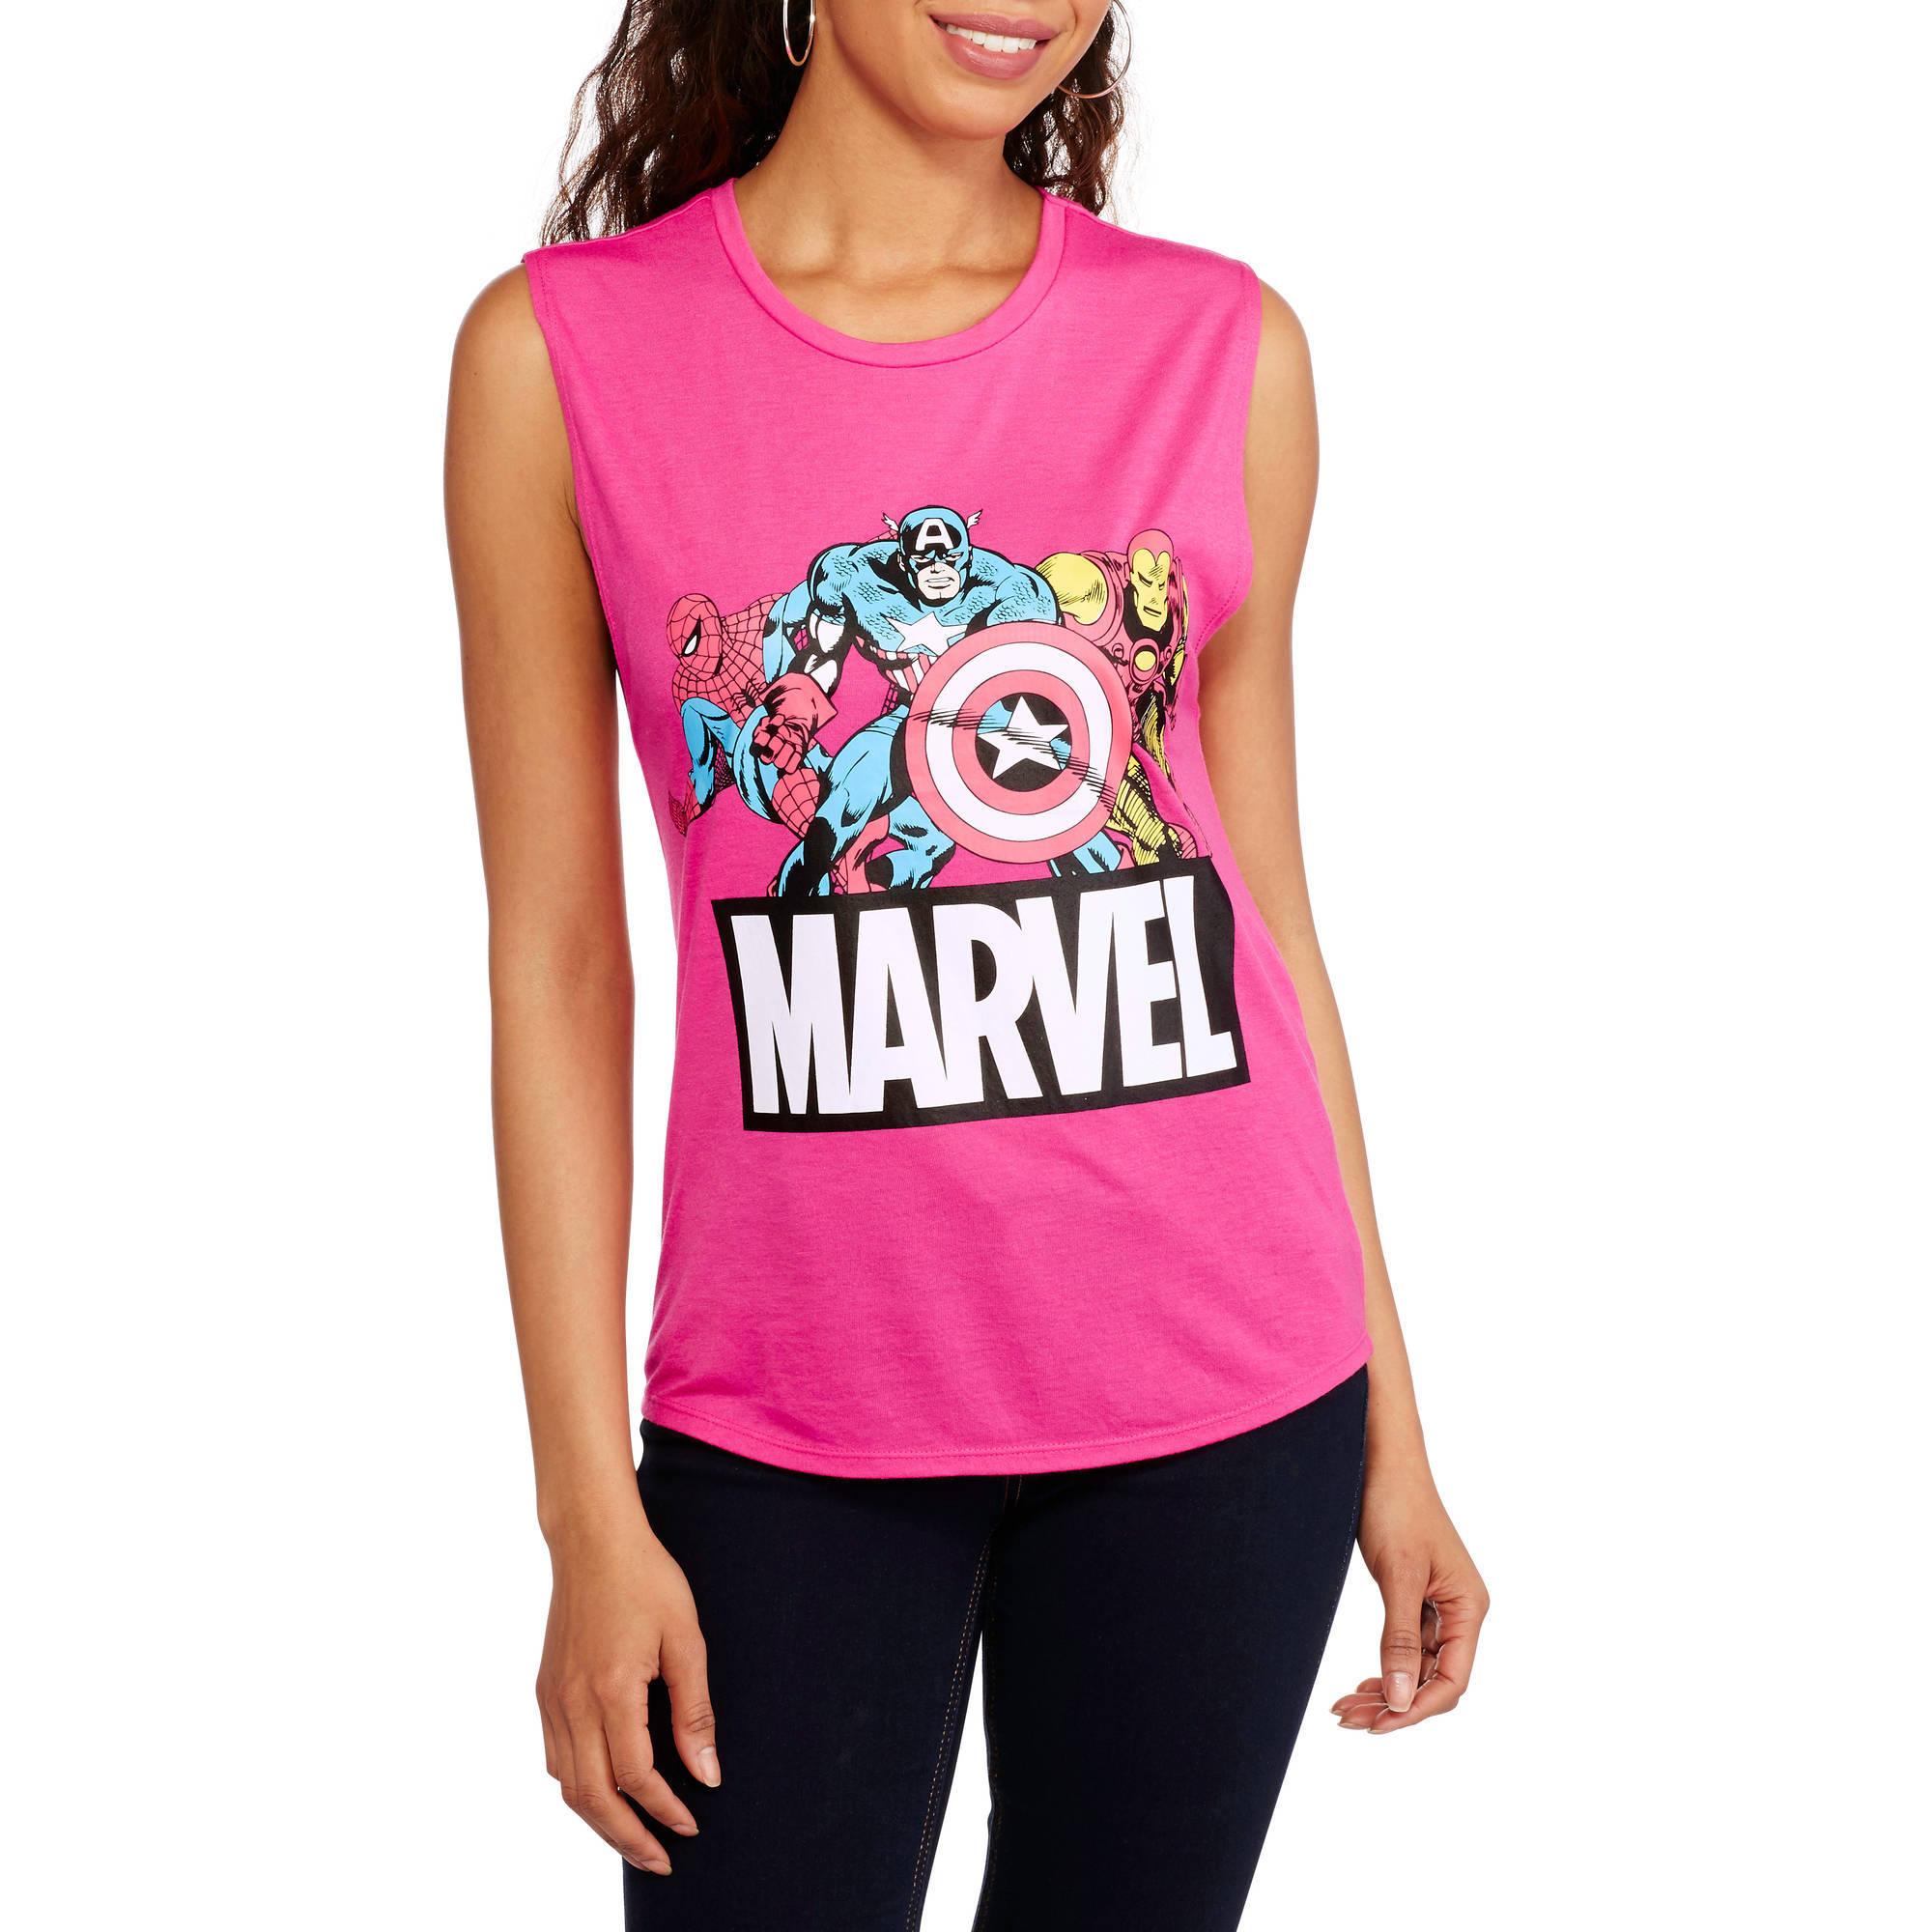 Marvel Juniors Graphic Shirttail Muscle Tank